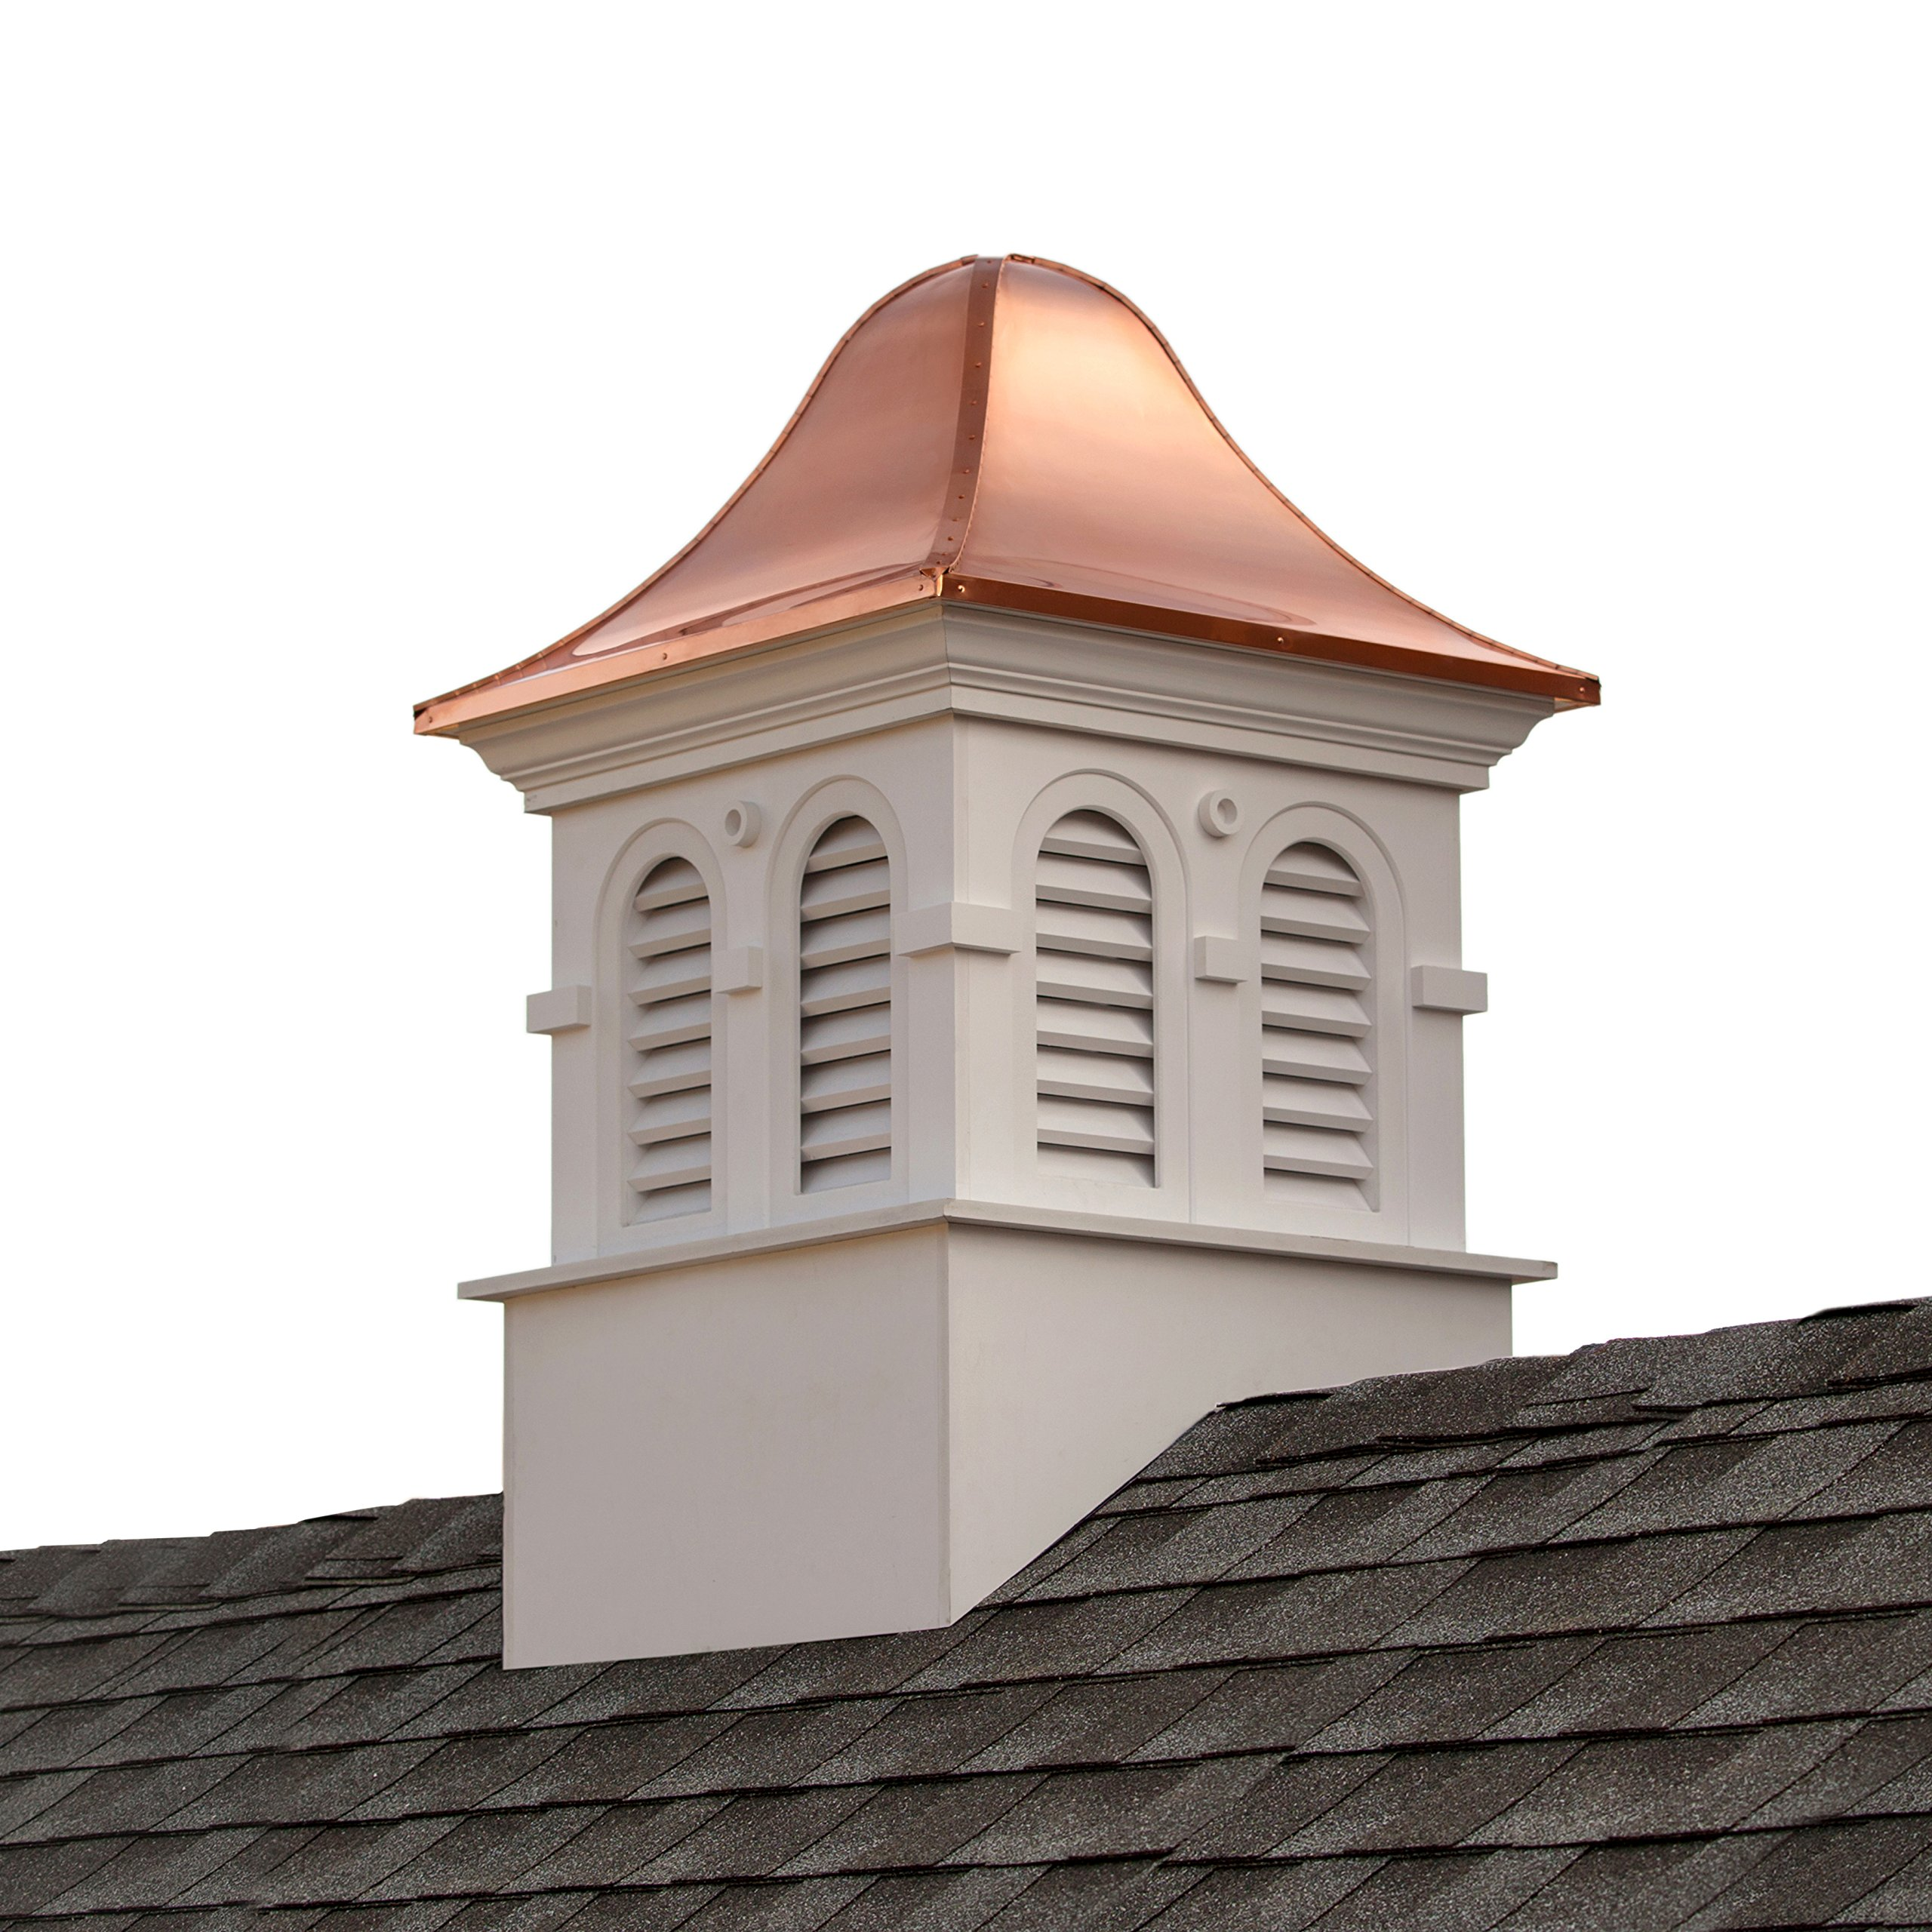 Smithsonian Montgomery Vinyl Cupola with Copper Roof 26'' x 42'' by Good Directions